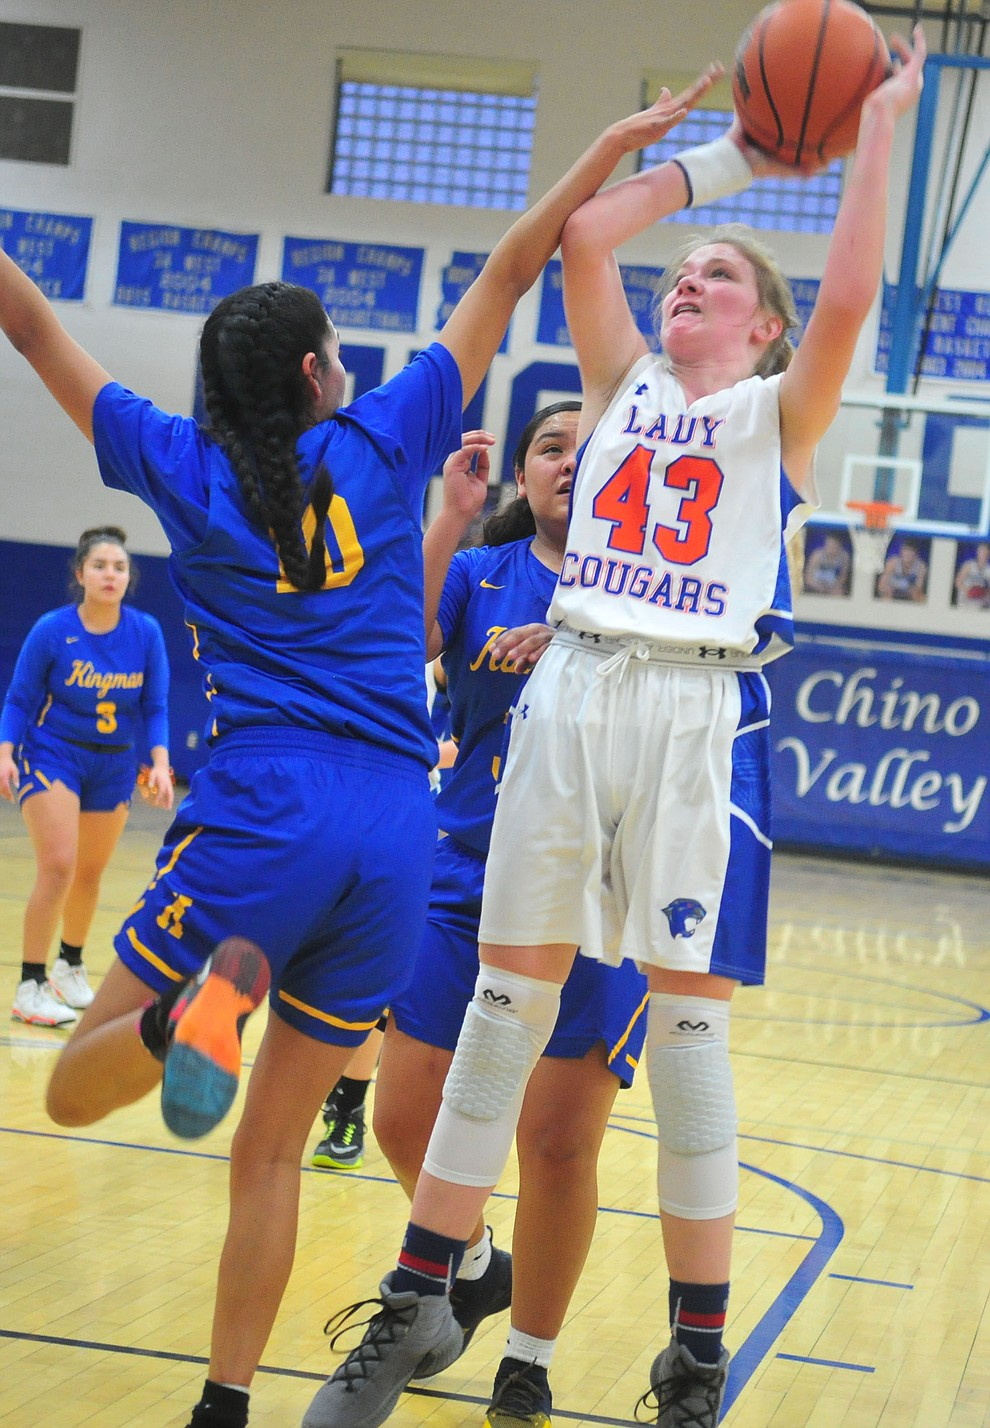 Chino Valley's Shayne Andrews takes a shot as they face the Kingman Bulldogs Thursday, Jan. 24, 2019 in Chino Valley. (Les Stukenberg/Courier).